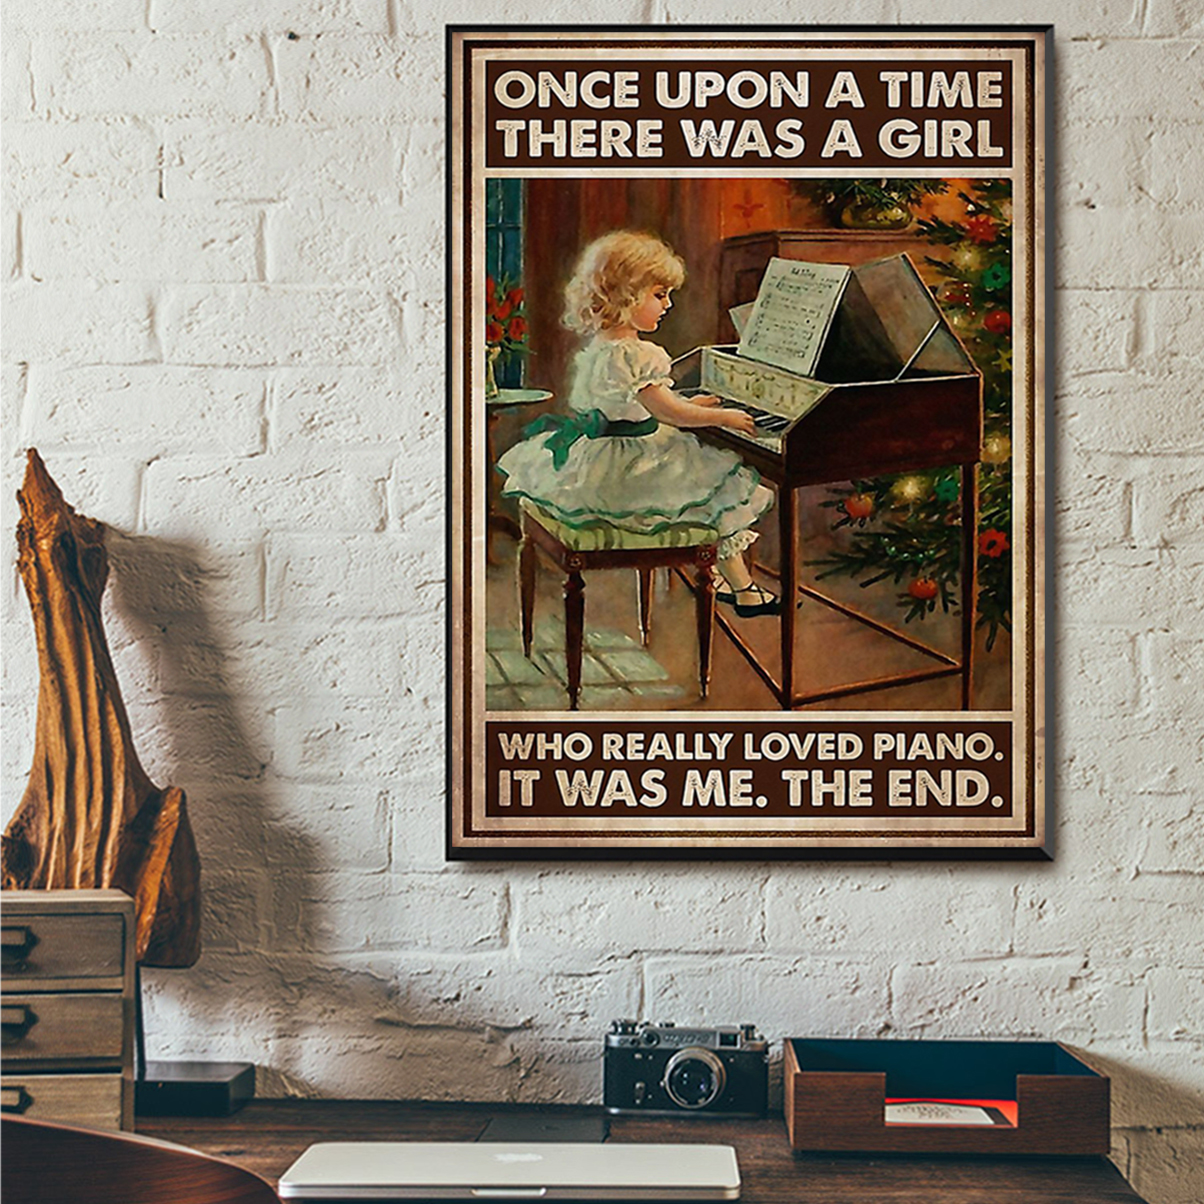 Once upon a time there was a girl who really loved piano poster A2